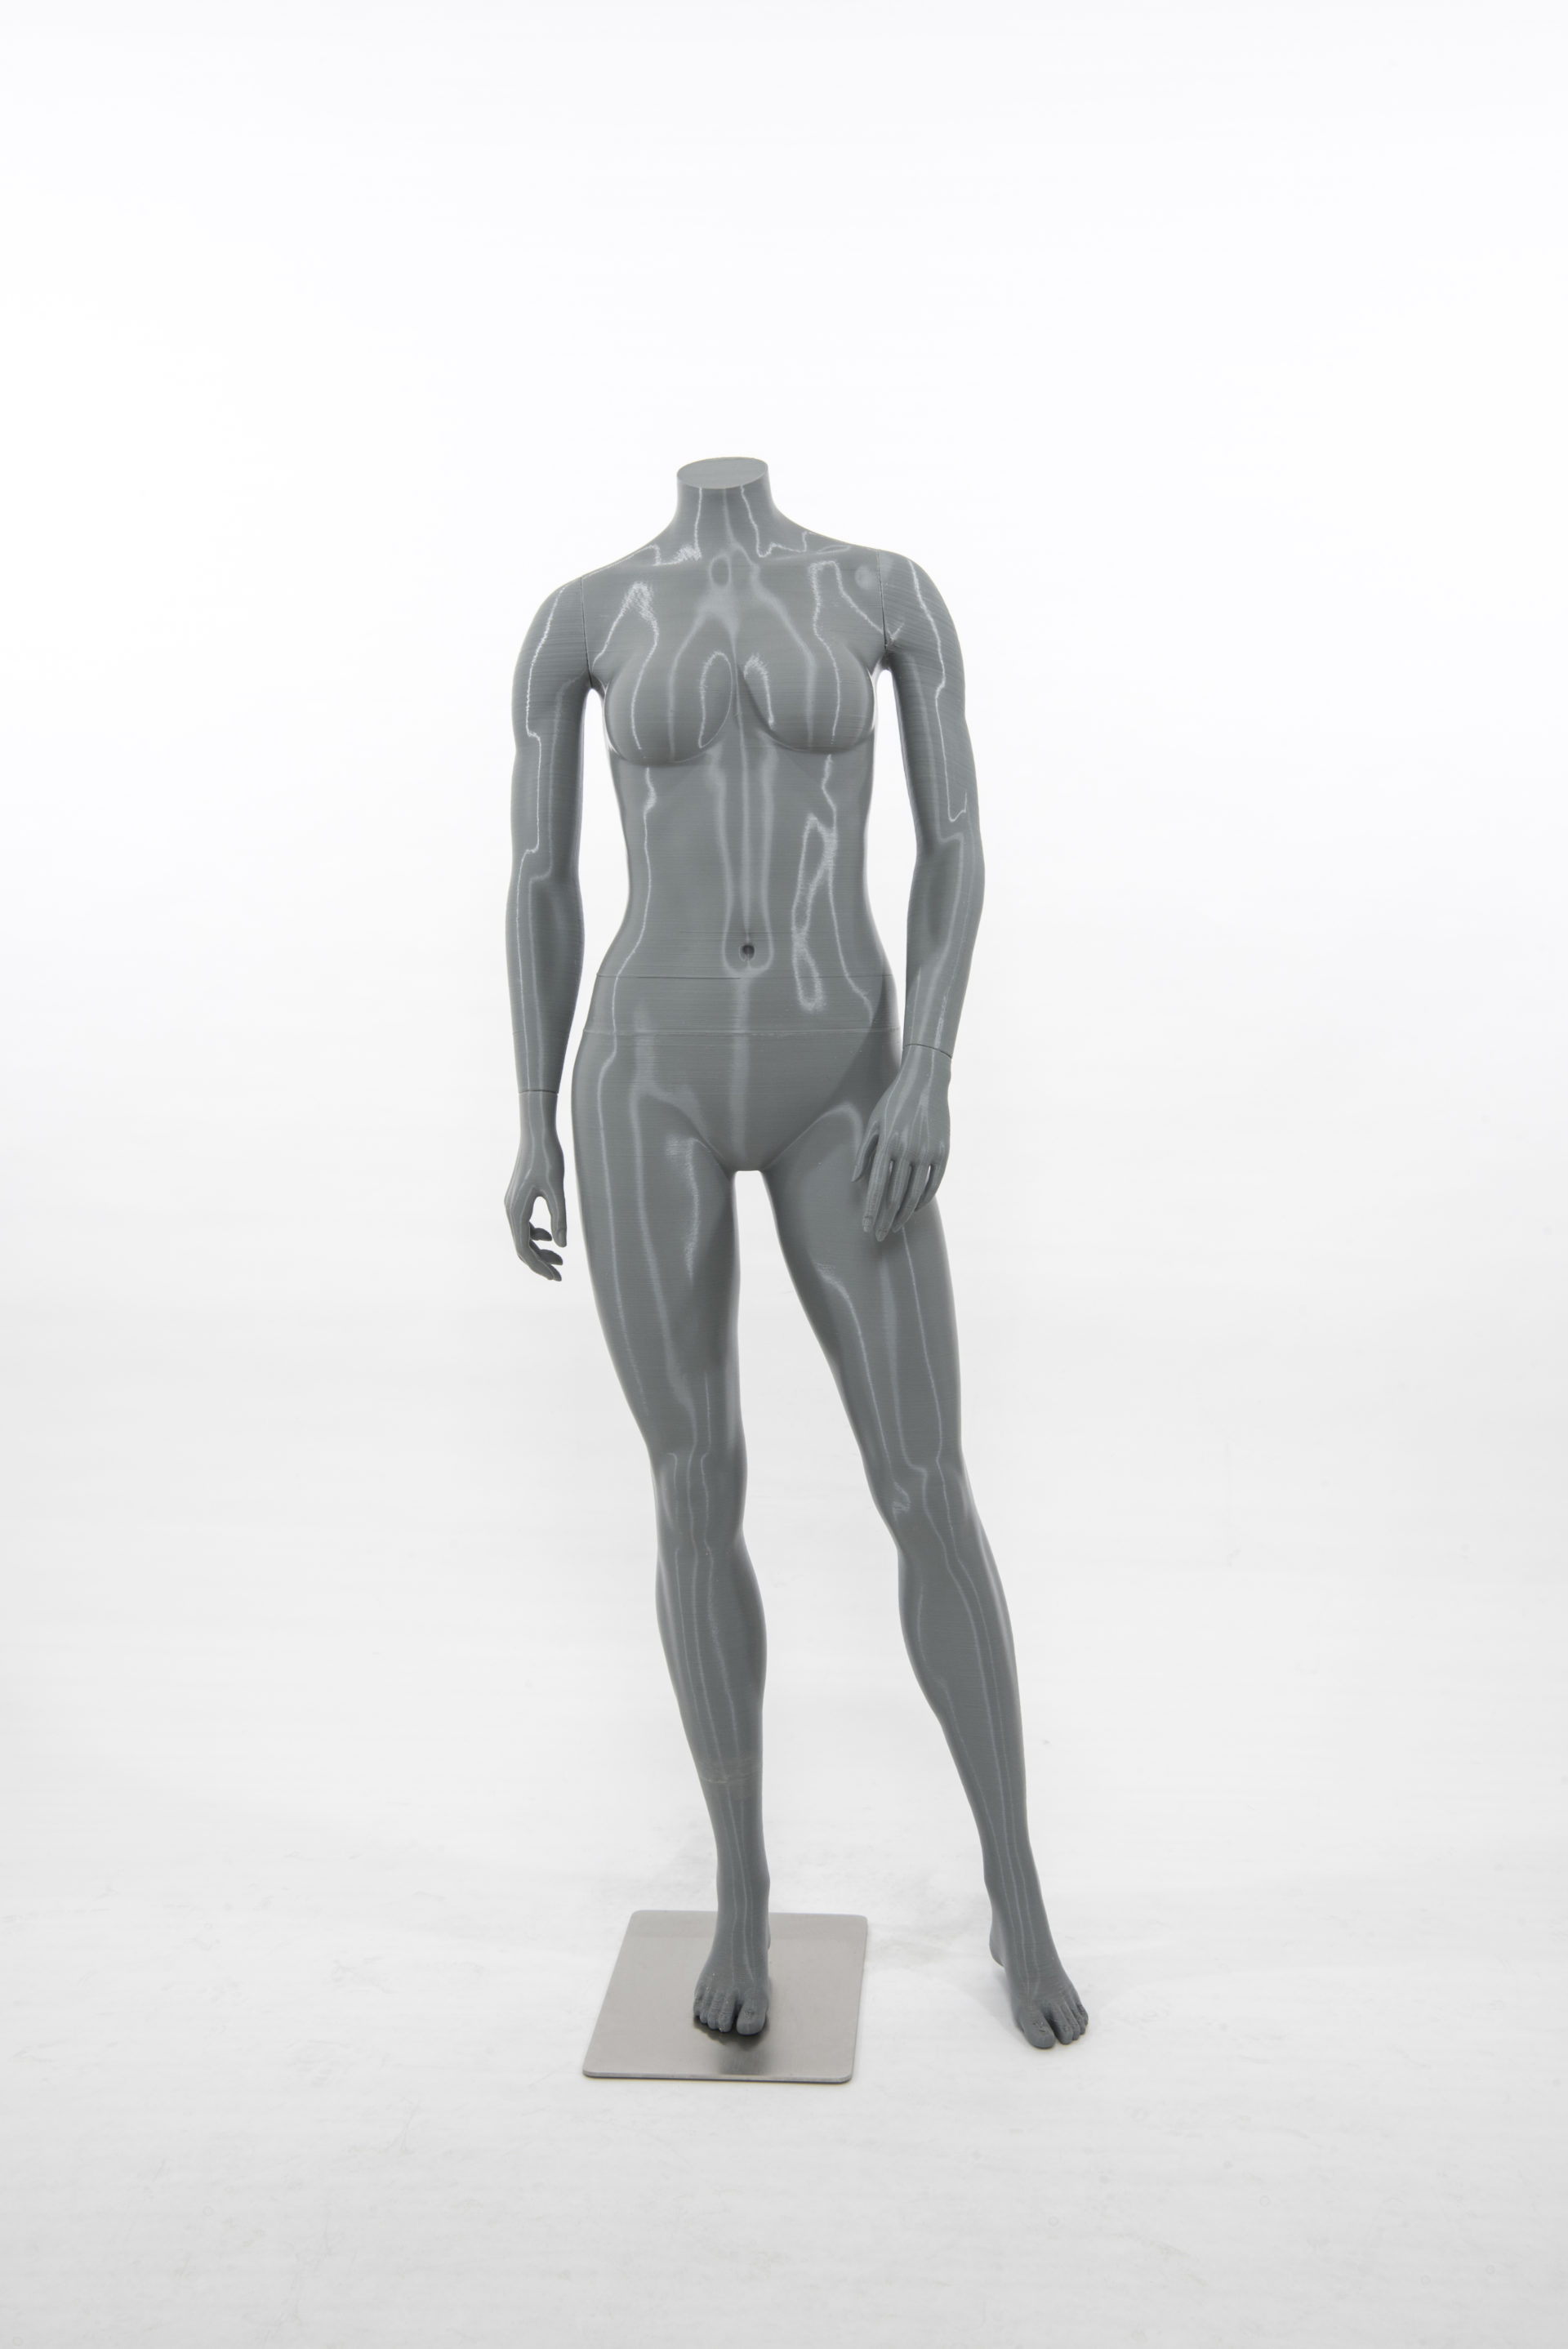 1:1 3D PRINTED MANNEQUIN